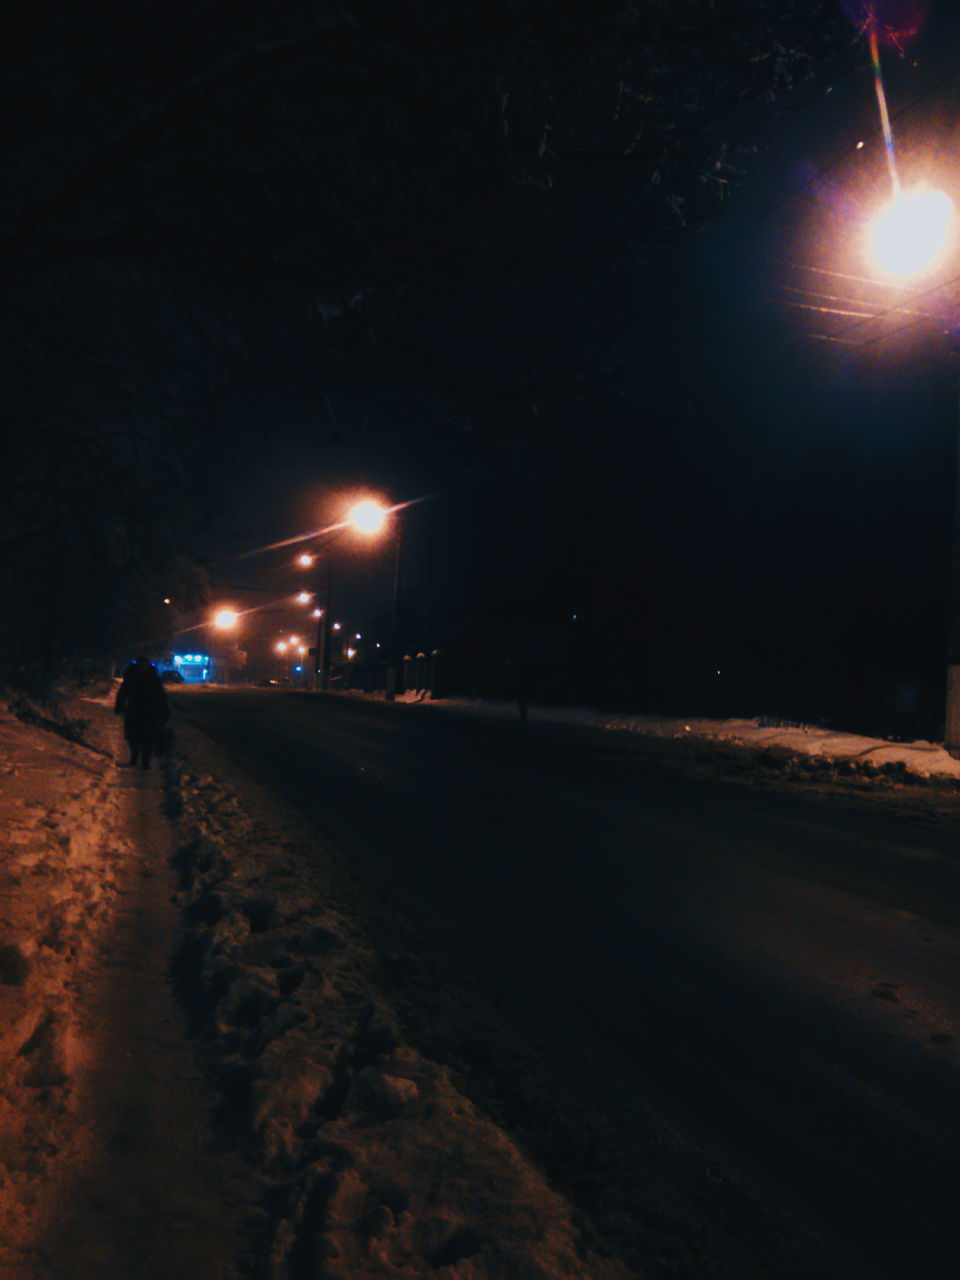 night, illuminated, real people, outdoors, walking, transportation, car, road, street light, land vehicle, winter, men, snow, one person, nature, sky, people